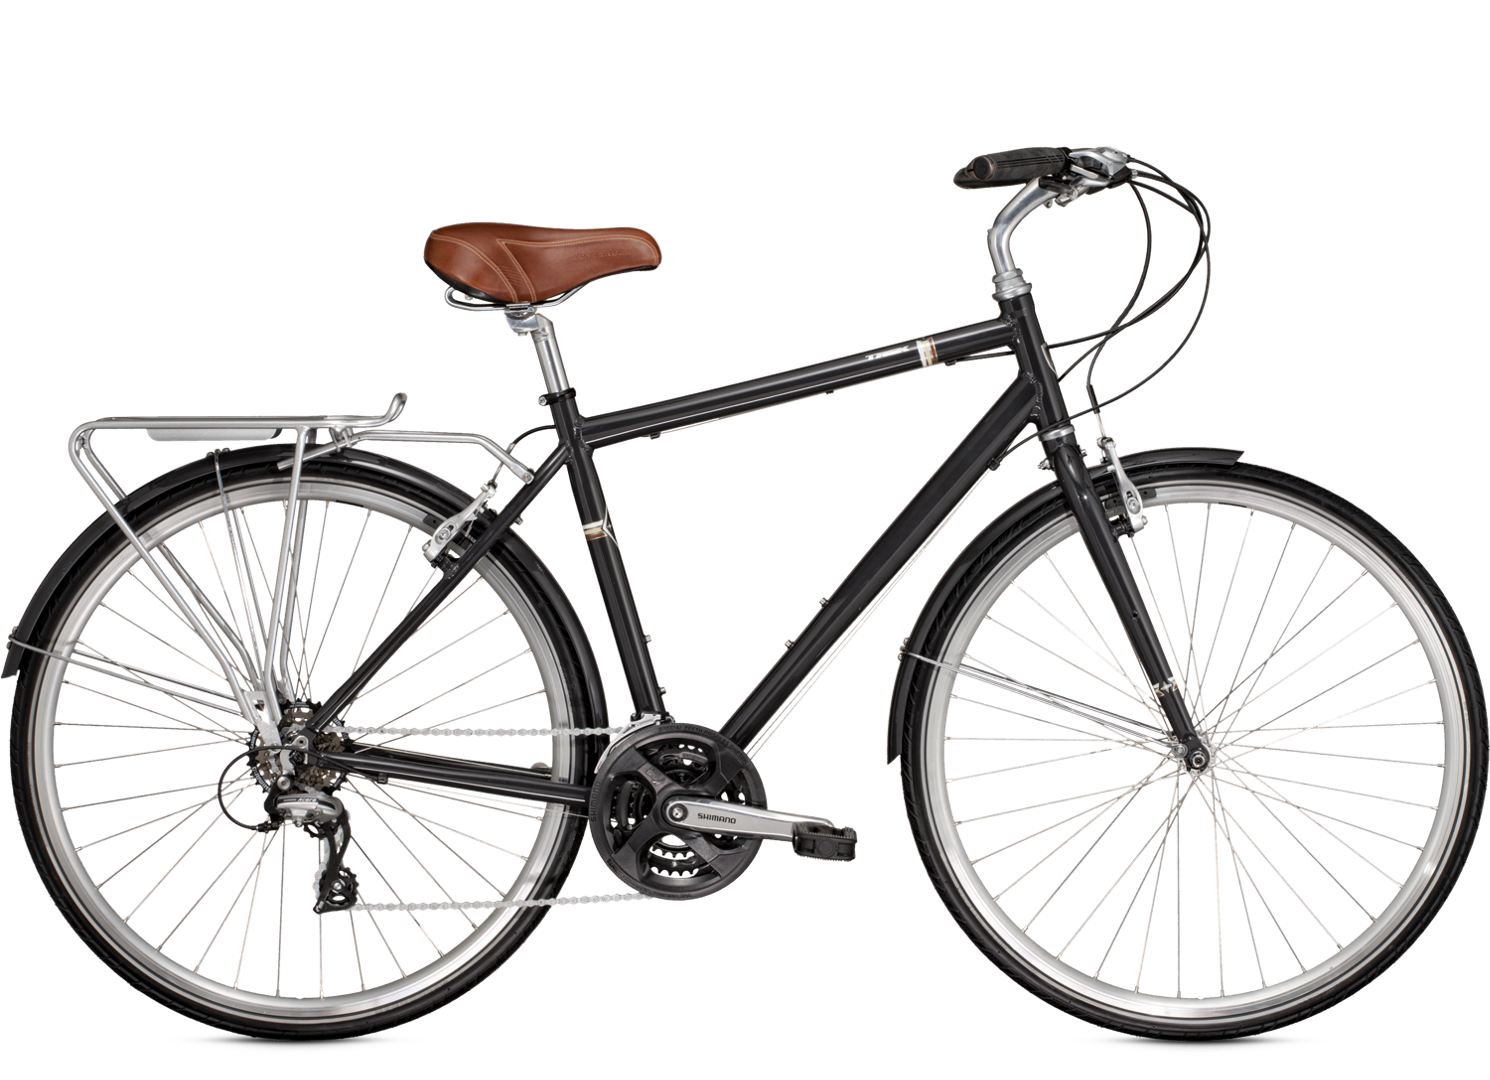 Classic Black Bicycle 544.06 Kb